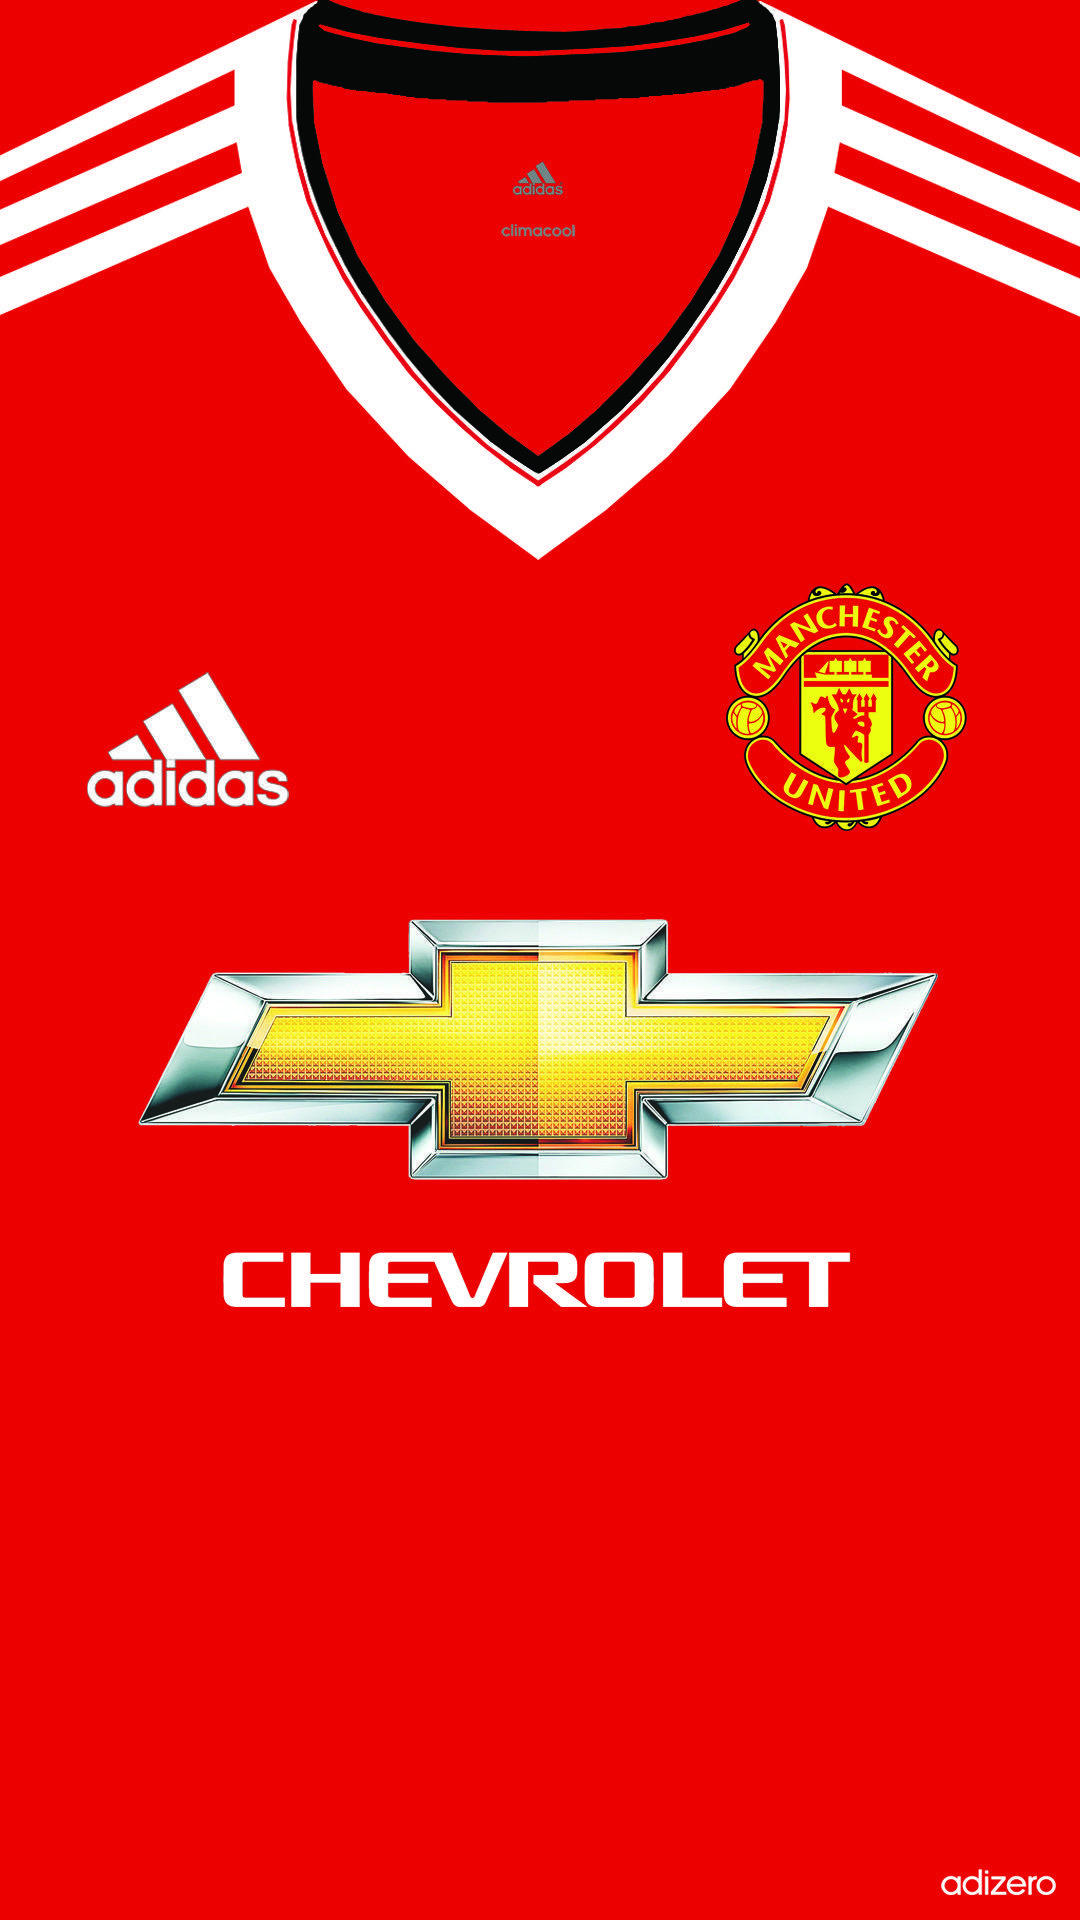 manchester united hd iphone wallpapers wallpaper cave manchester united hd iphone wallpapers